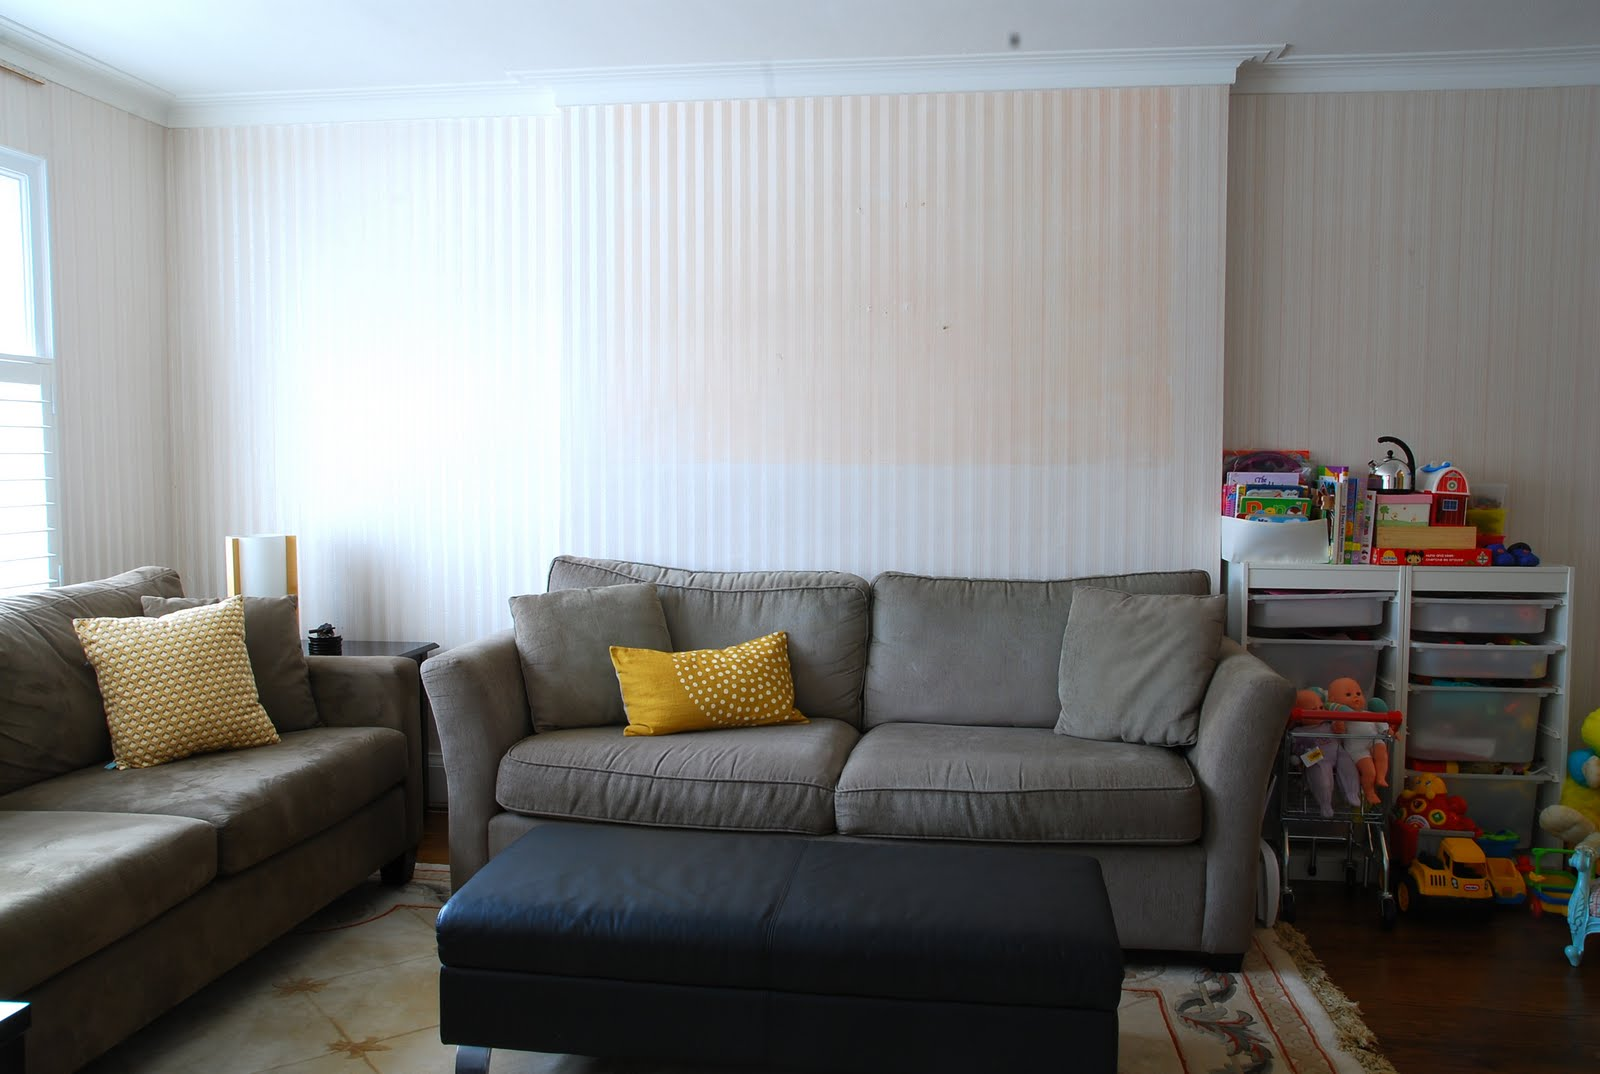 small living room remodel before and after, before and after living room makeover, living room renovation